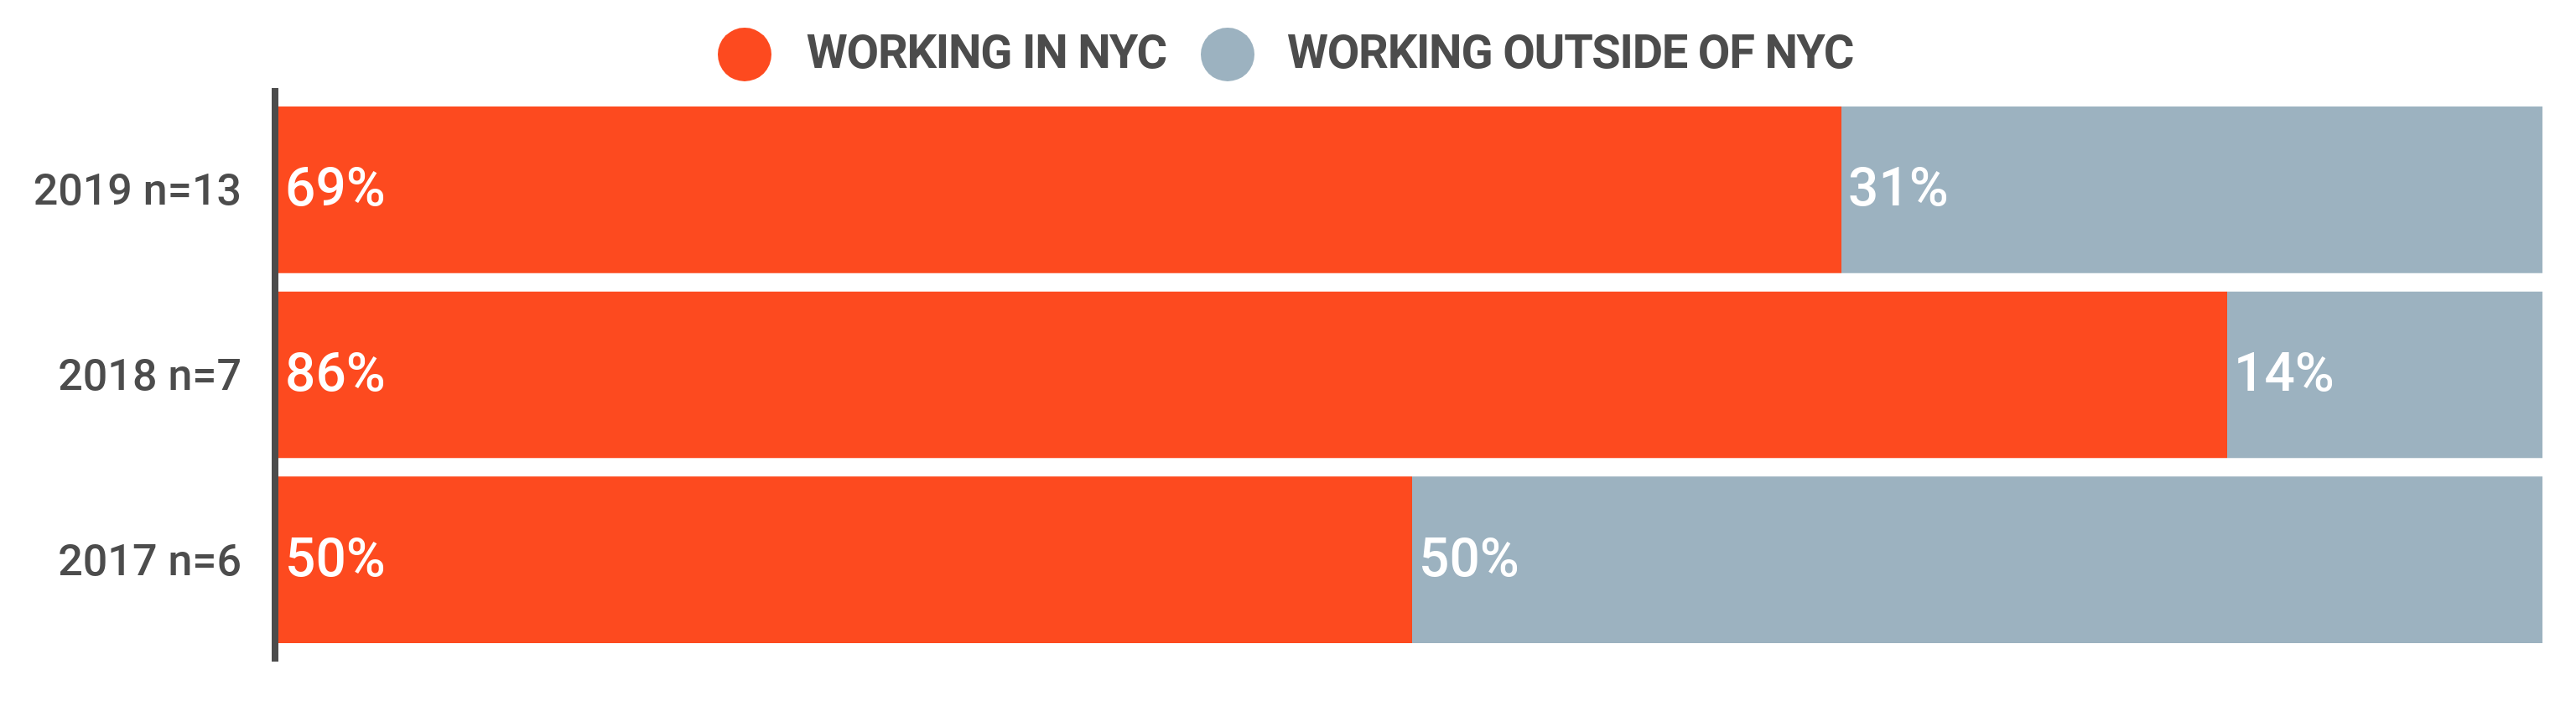 Bar-graph, Post Graduation Working Location, (2017-2019). For 2019: 50% worked in NYC and 50% worked elsewhere; for 2018: 86% worked in NYC and 14% worked elsewhere; and for 2017, 69% worked in NYC and 31% worked elsewhere.